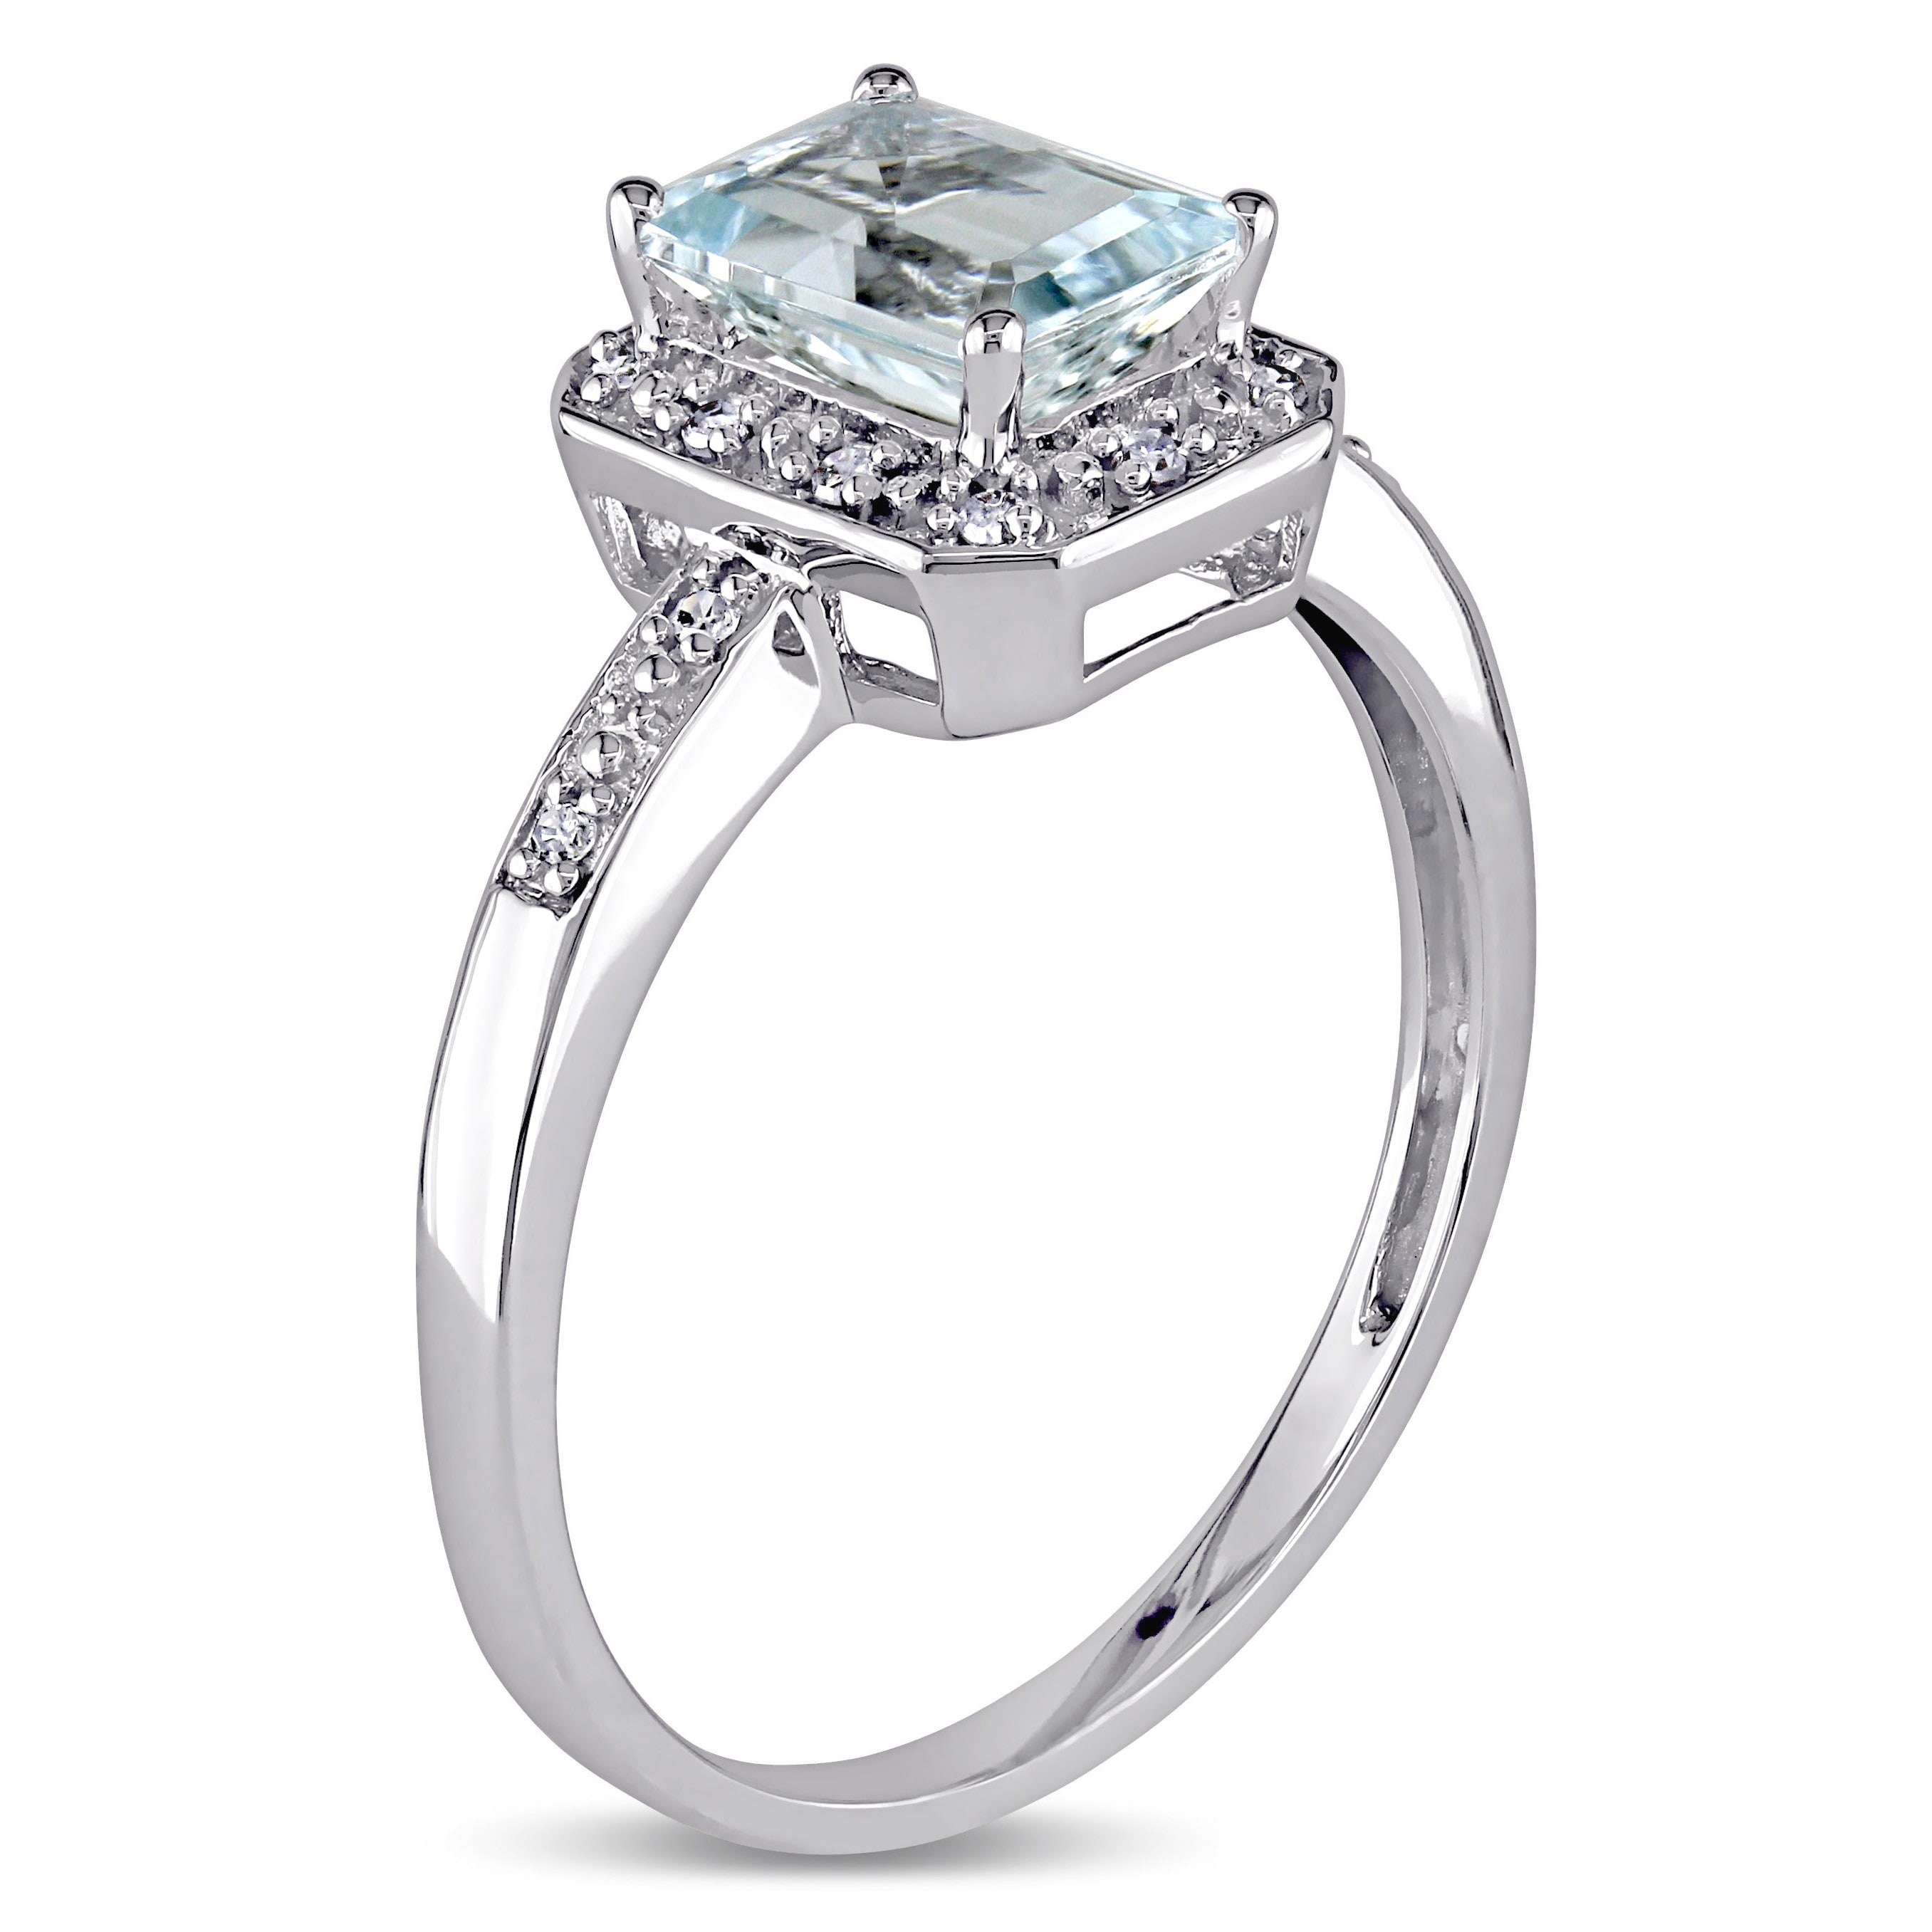 Miadora 10k White Gold Aquamarine And Diamond Accent Ring For Sale Online